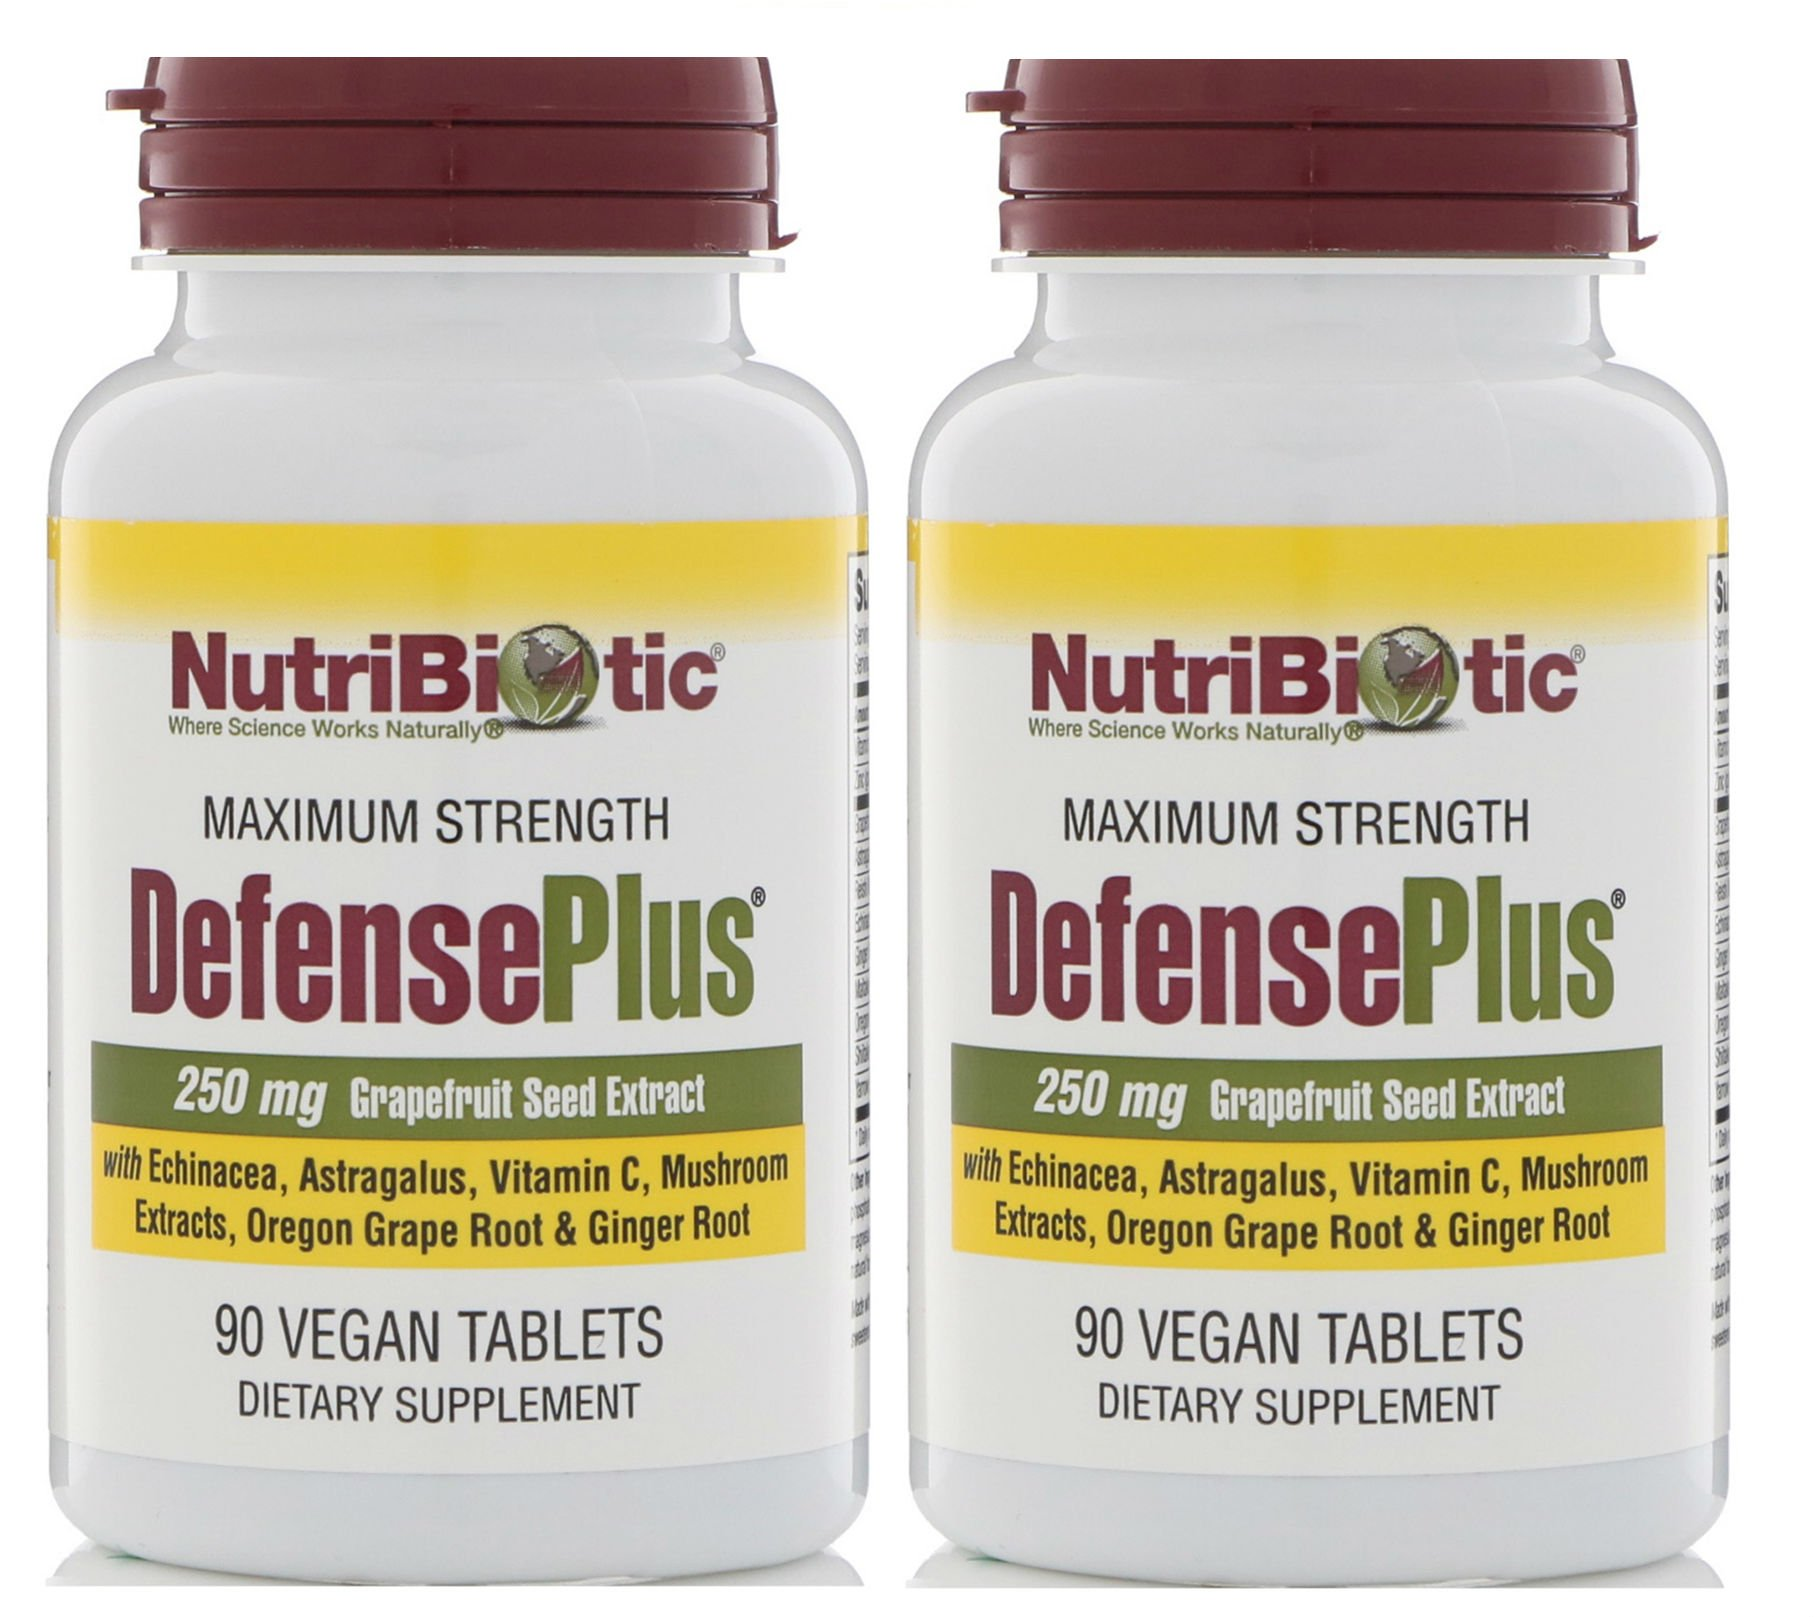 NutriBiotic DefensePlus 250 mg (Pack of 2) with Grapefruit Seed Extract and Vitamin C, 90 tablets per bottle